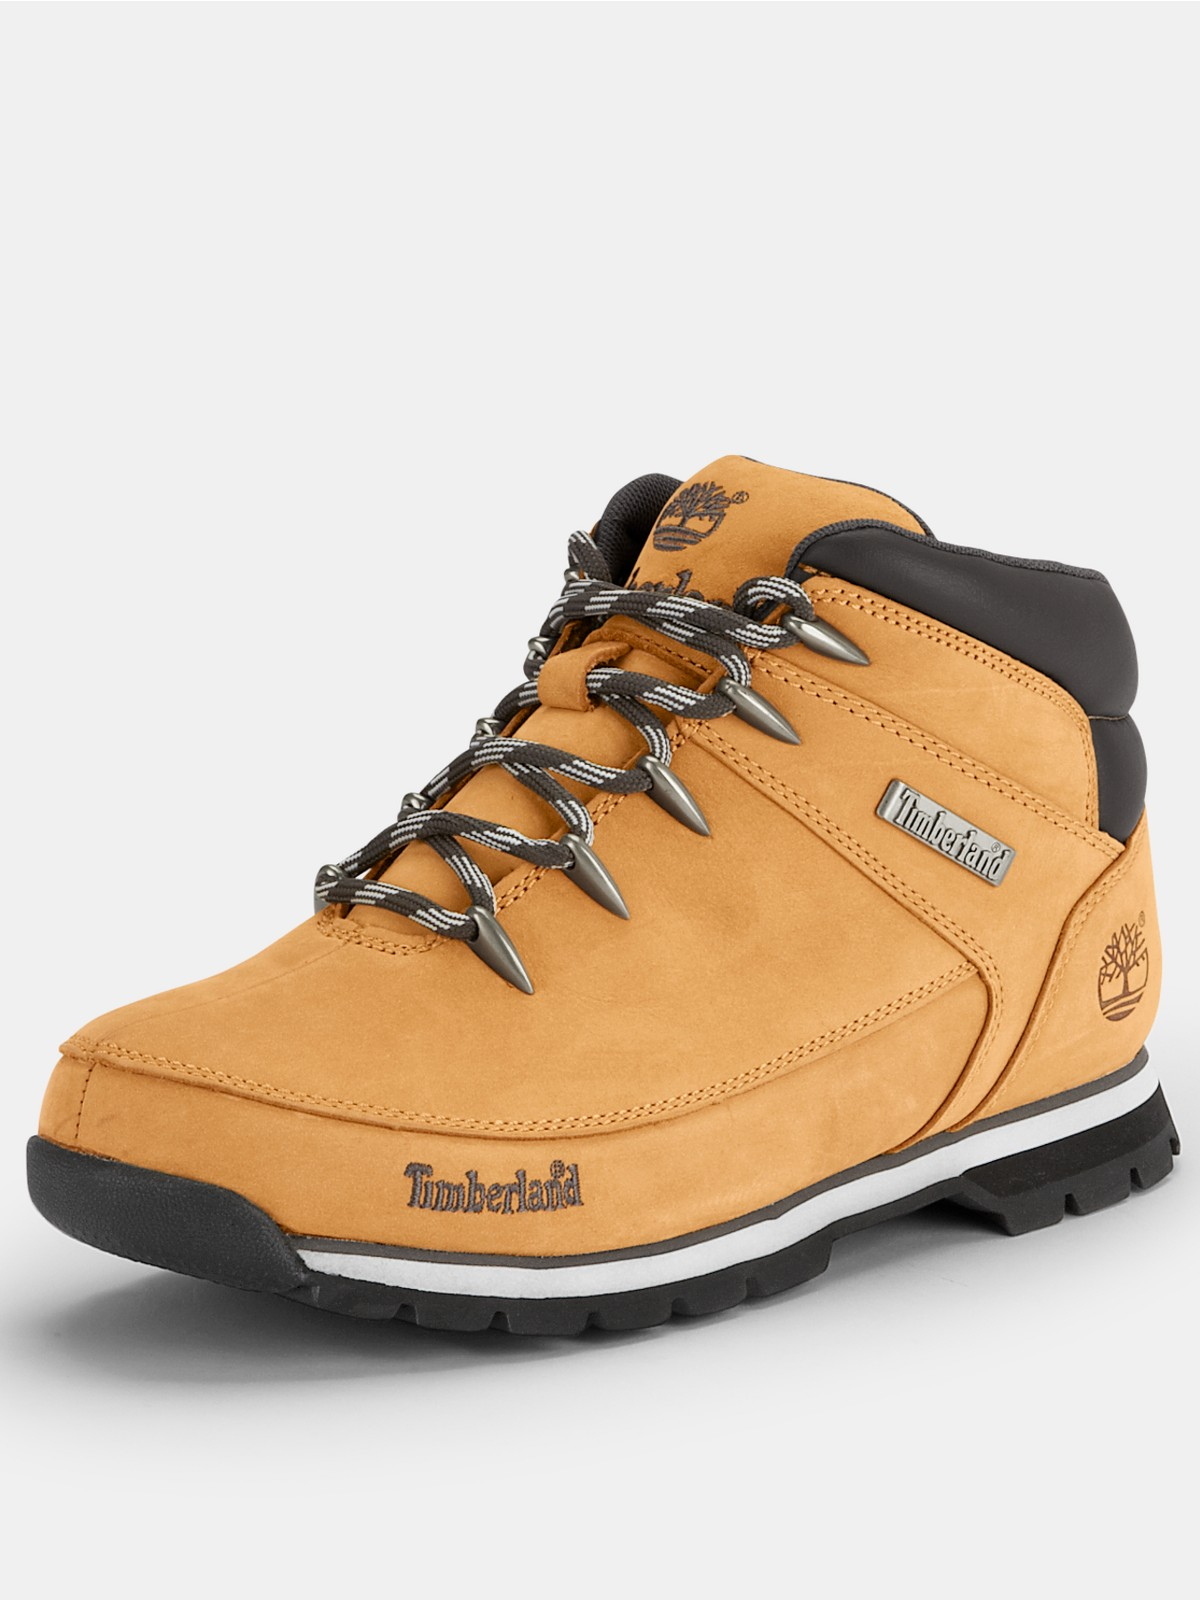 Items by designer store or trend timberland designer very retailer